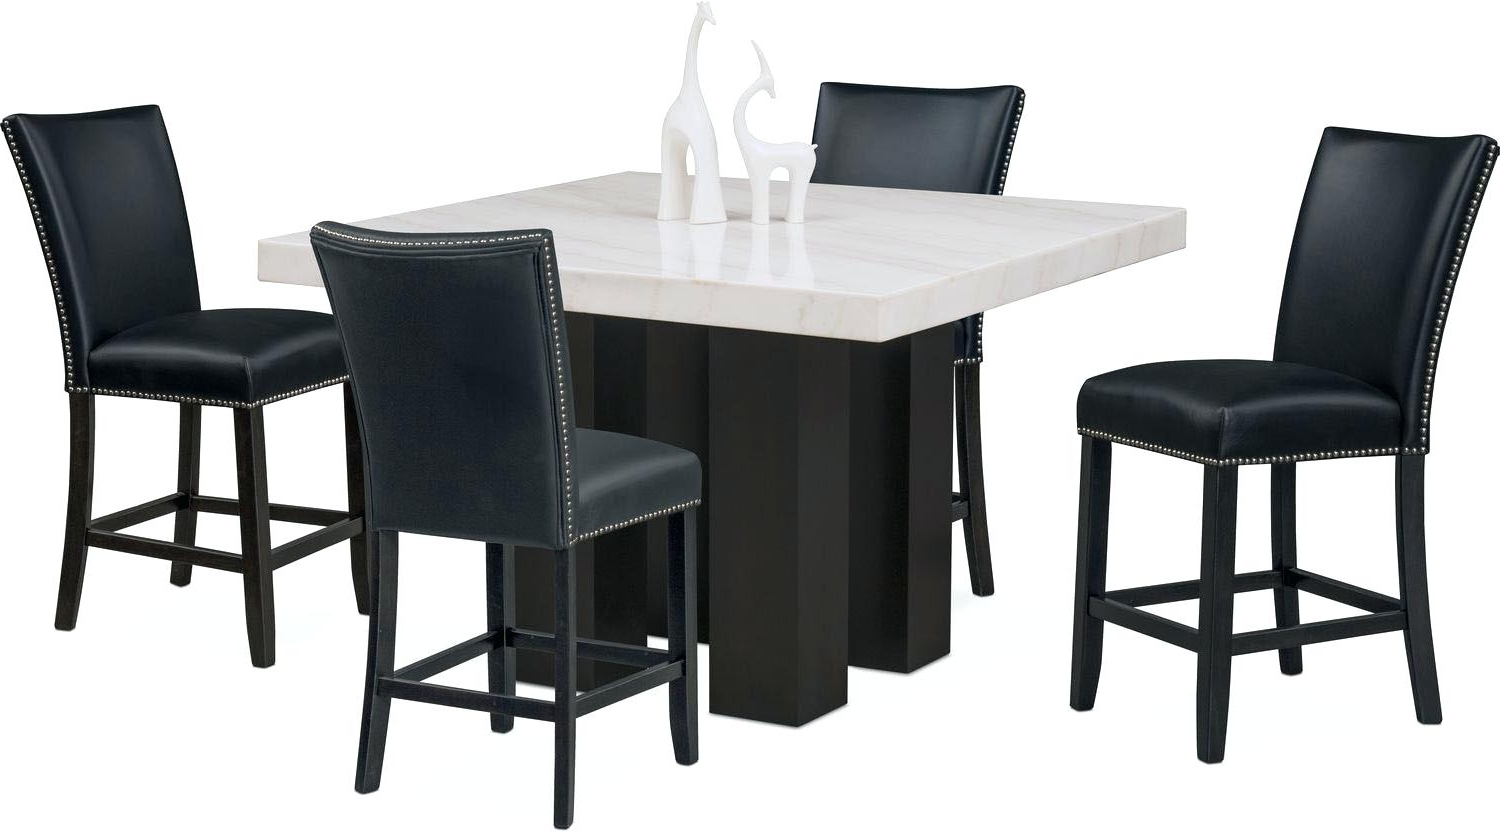 2018 Dining Table Stools Dining Table Dining Bar Table Set – Savagisms Within Dining Tables With Attached Stools (View 2 of 25)